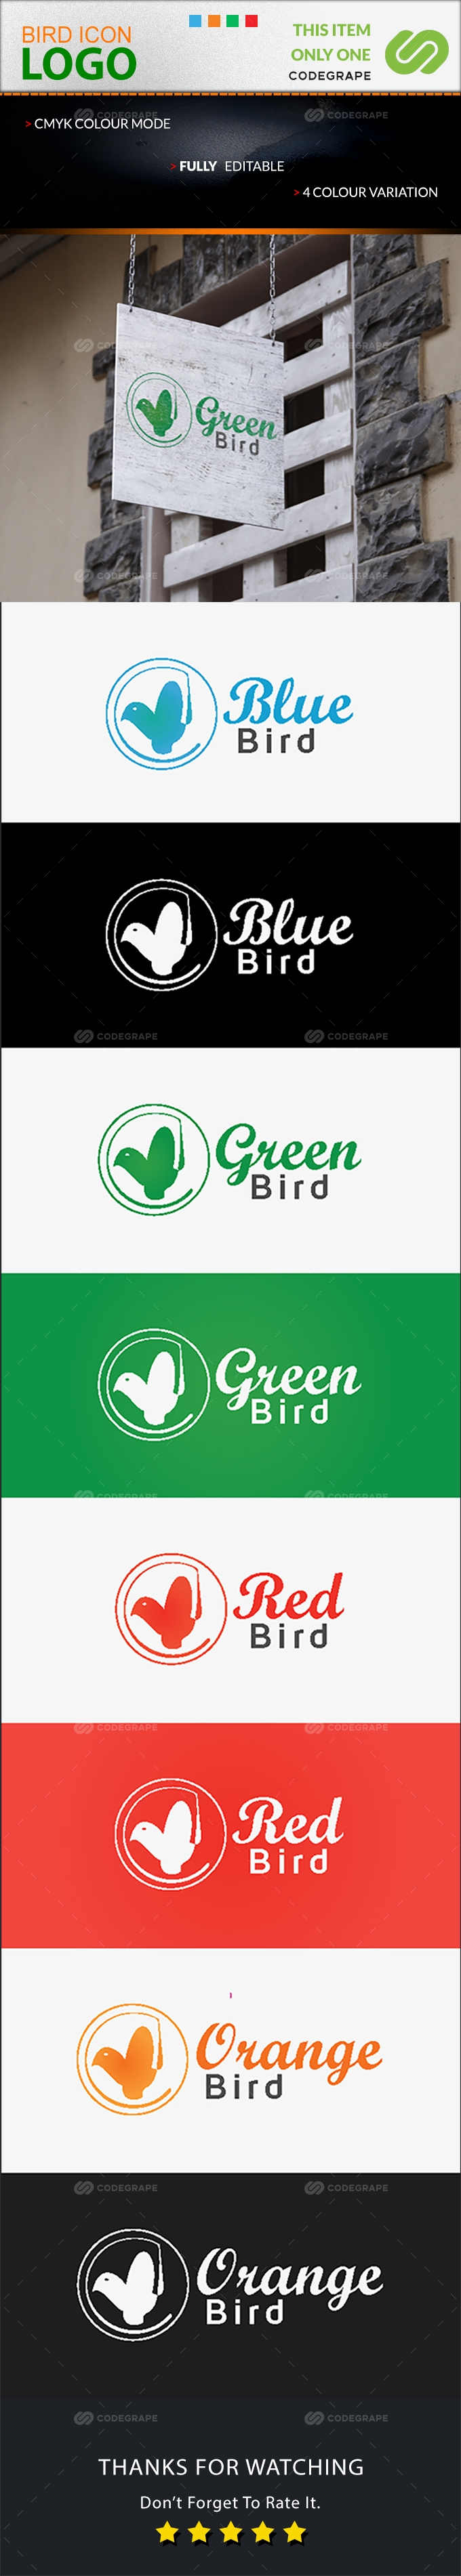 Creative Bird Icon Logo Design